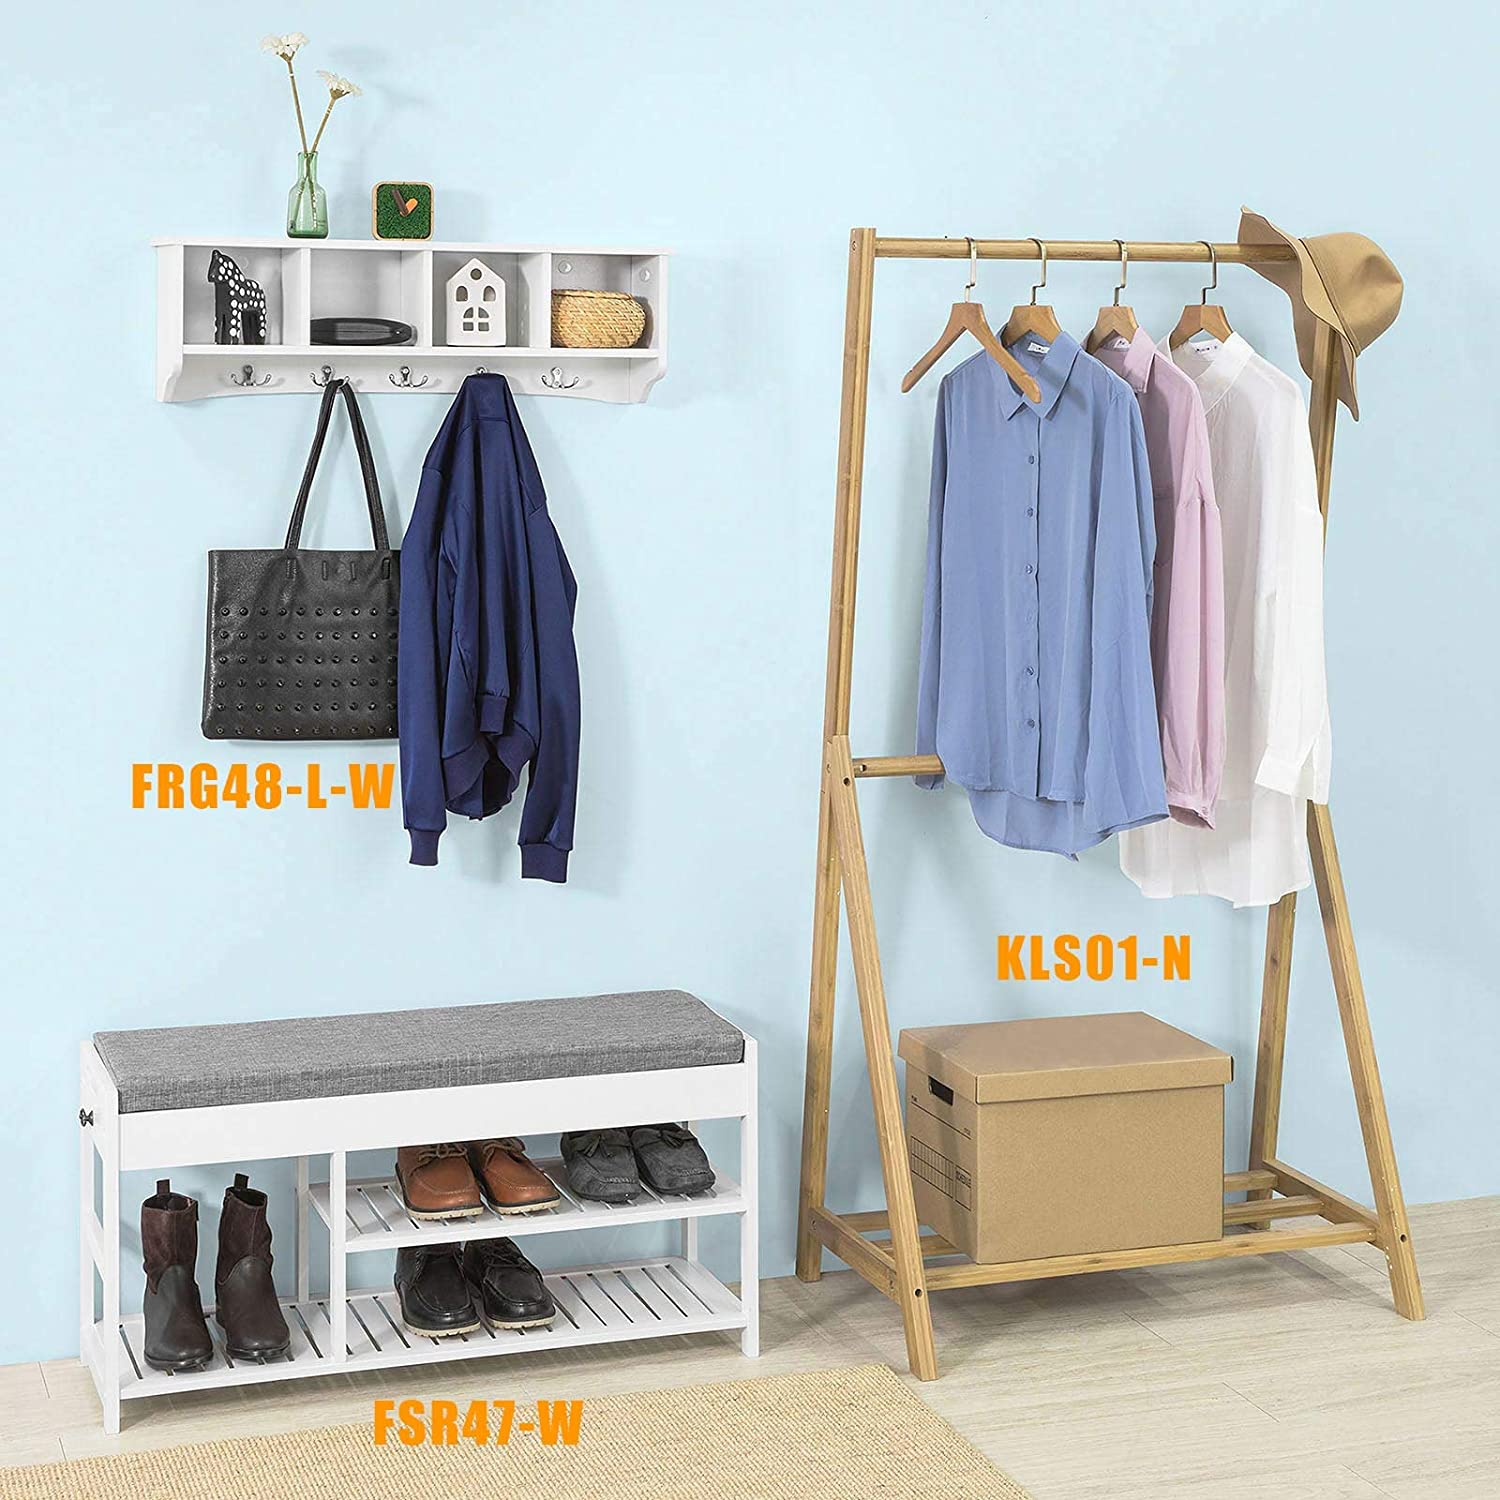 Hallway Shoe Storage Bench Organizer with Drawers Bamboo Shoe Rack Shoe Bench with Lift Up Bench Top and Seat Cushion SoBuy FSR47-N